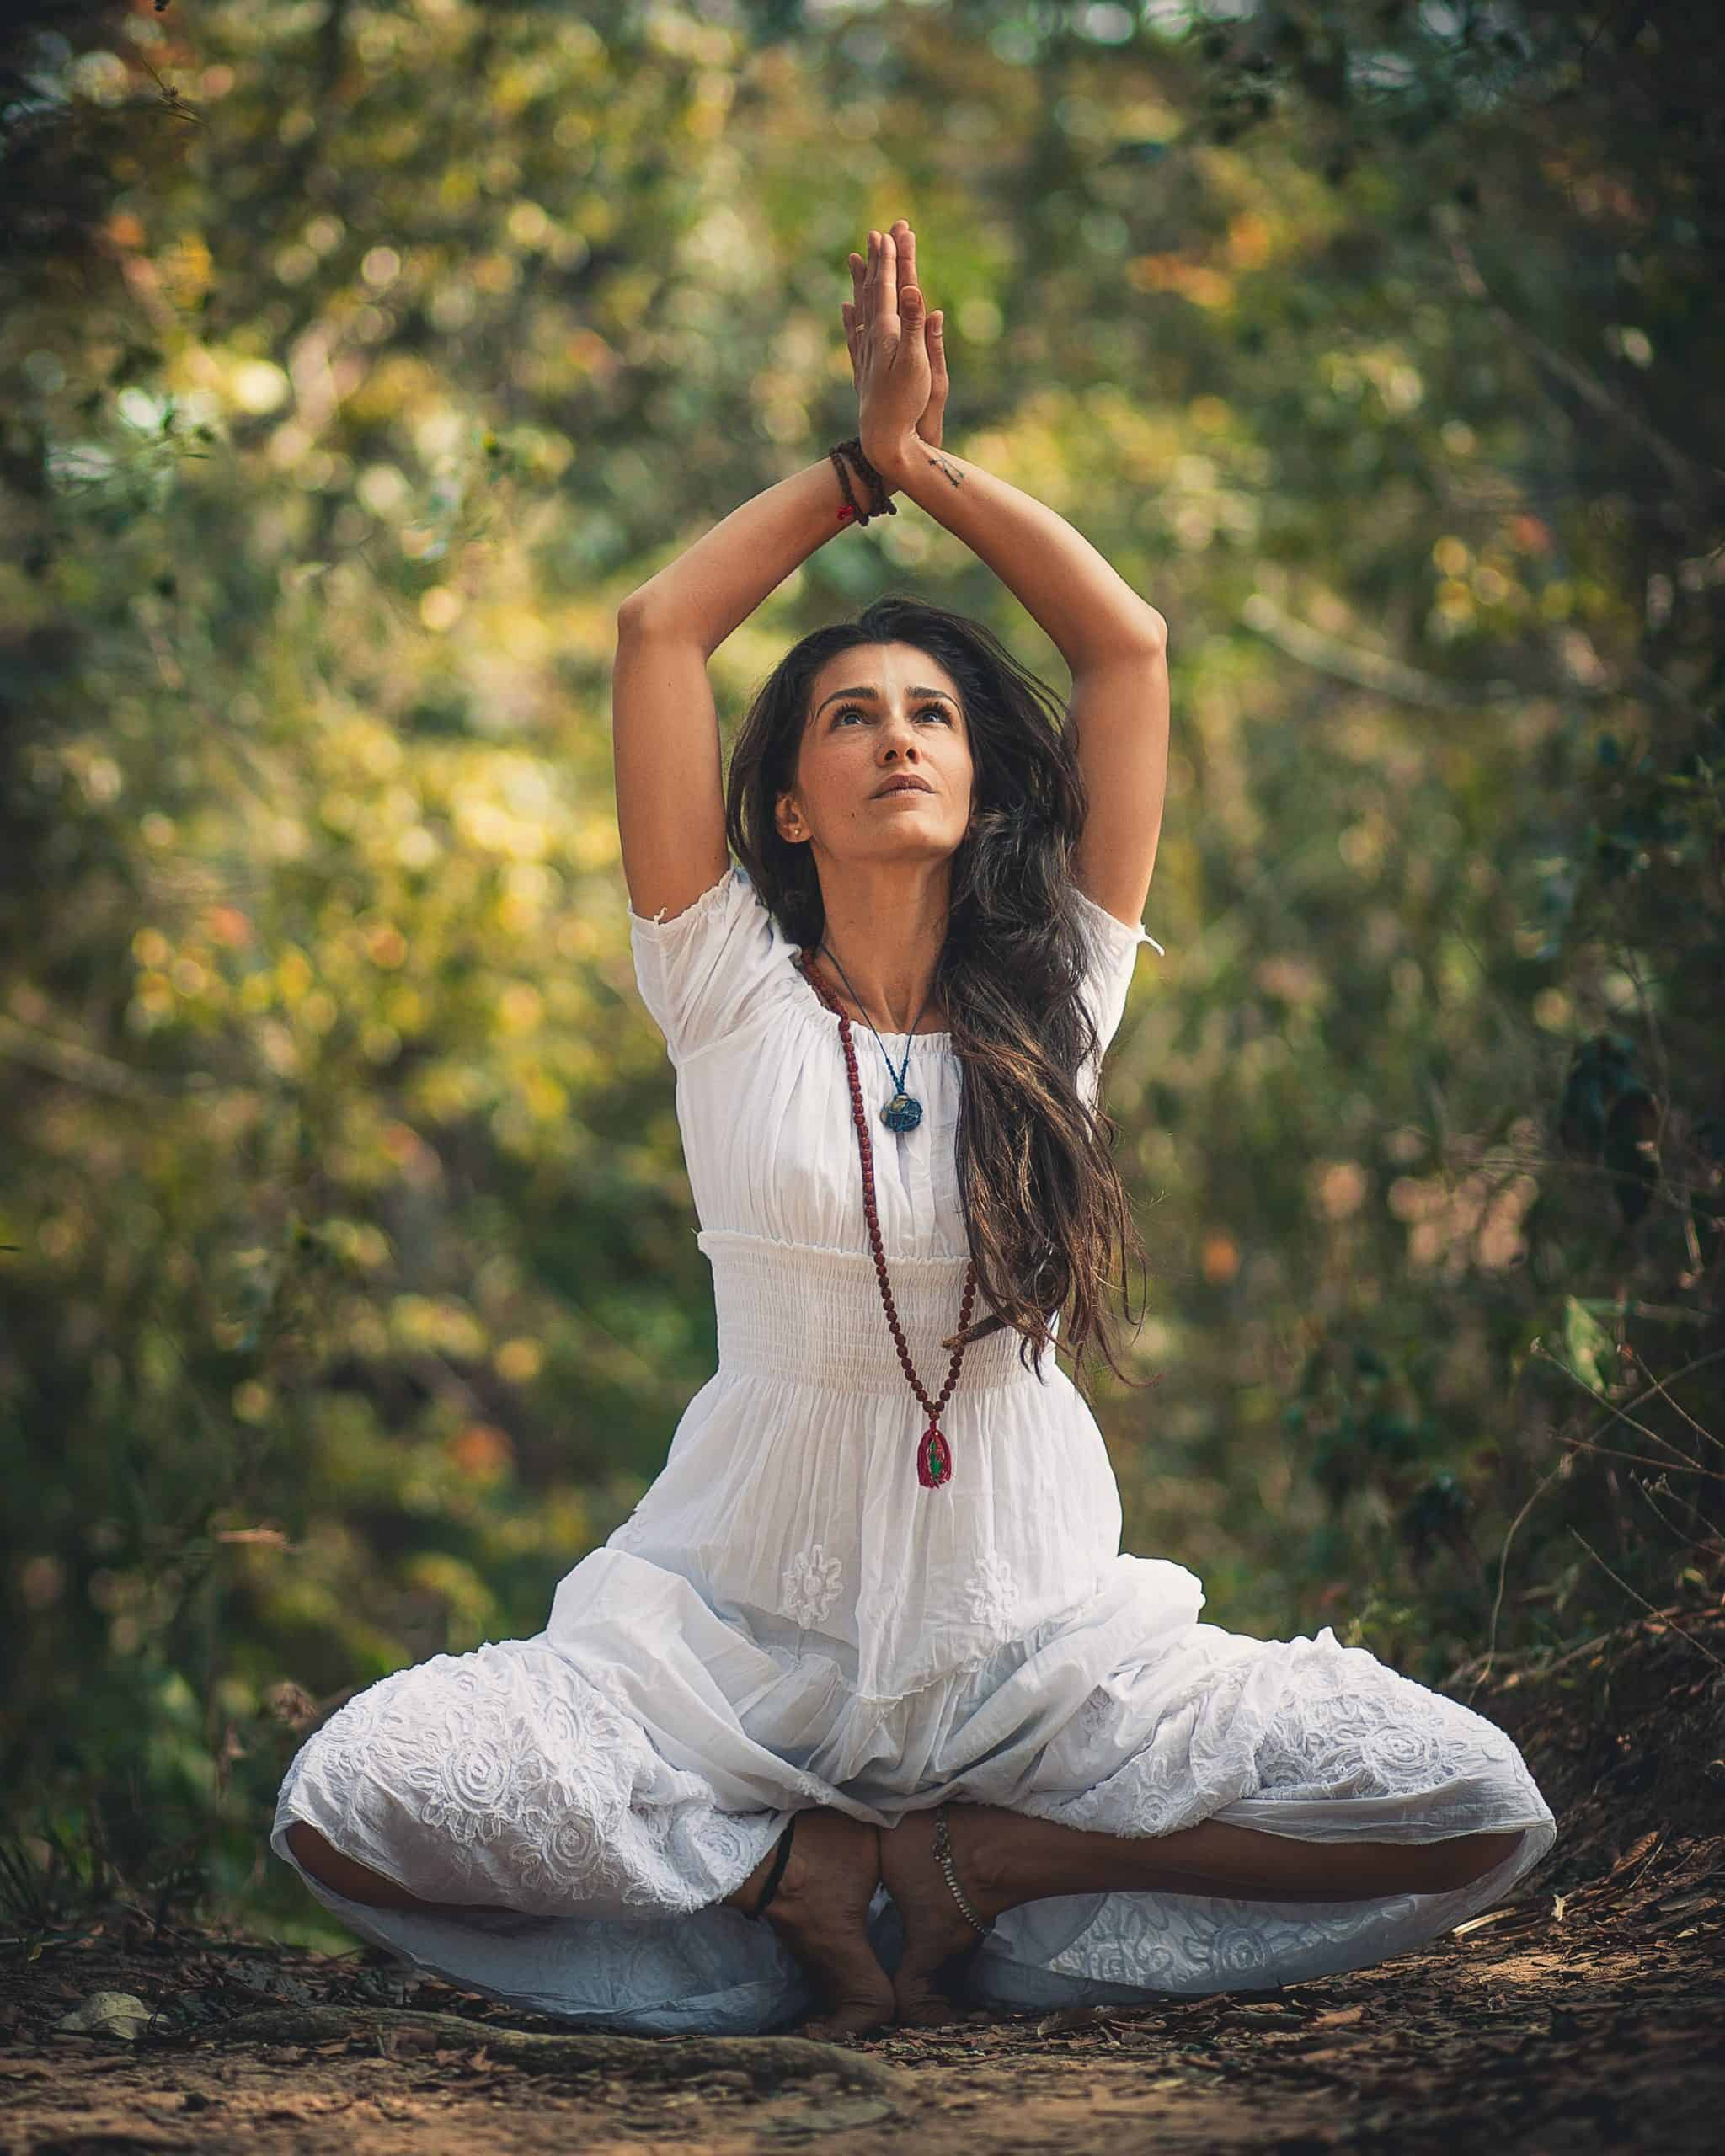 Which Of The Two Is More Beneficial For You – Yoga Or Gym